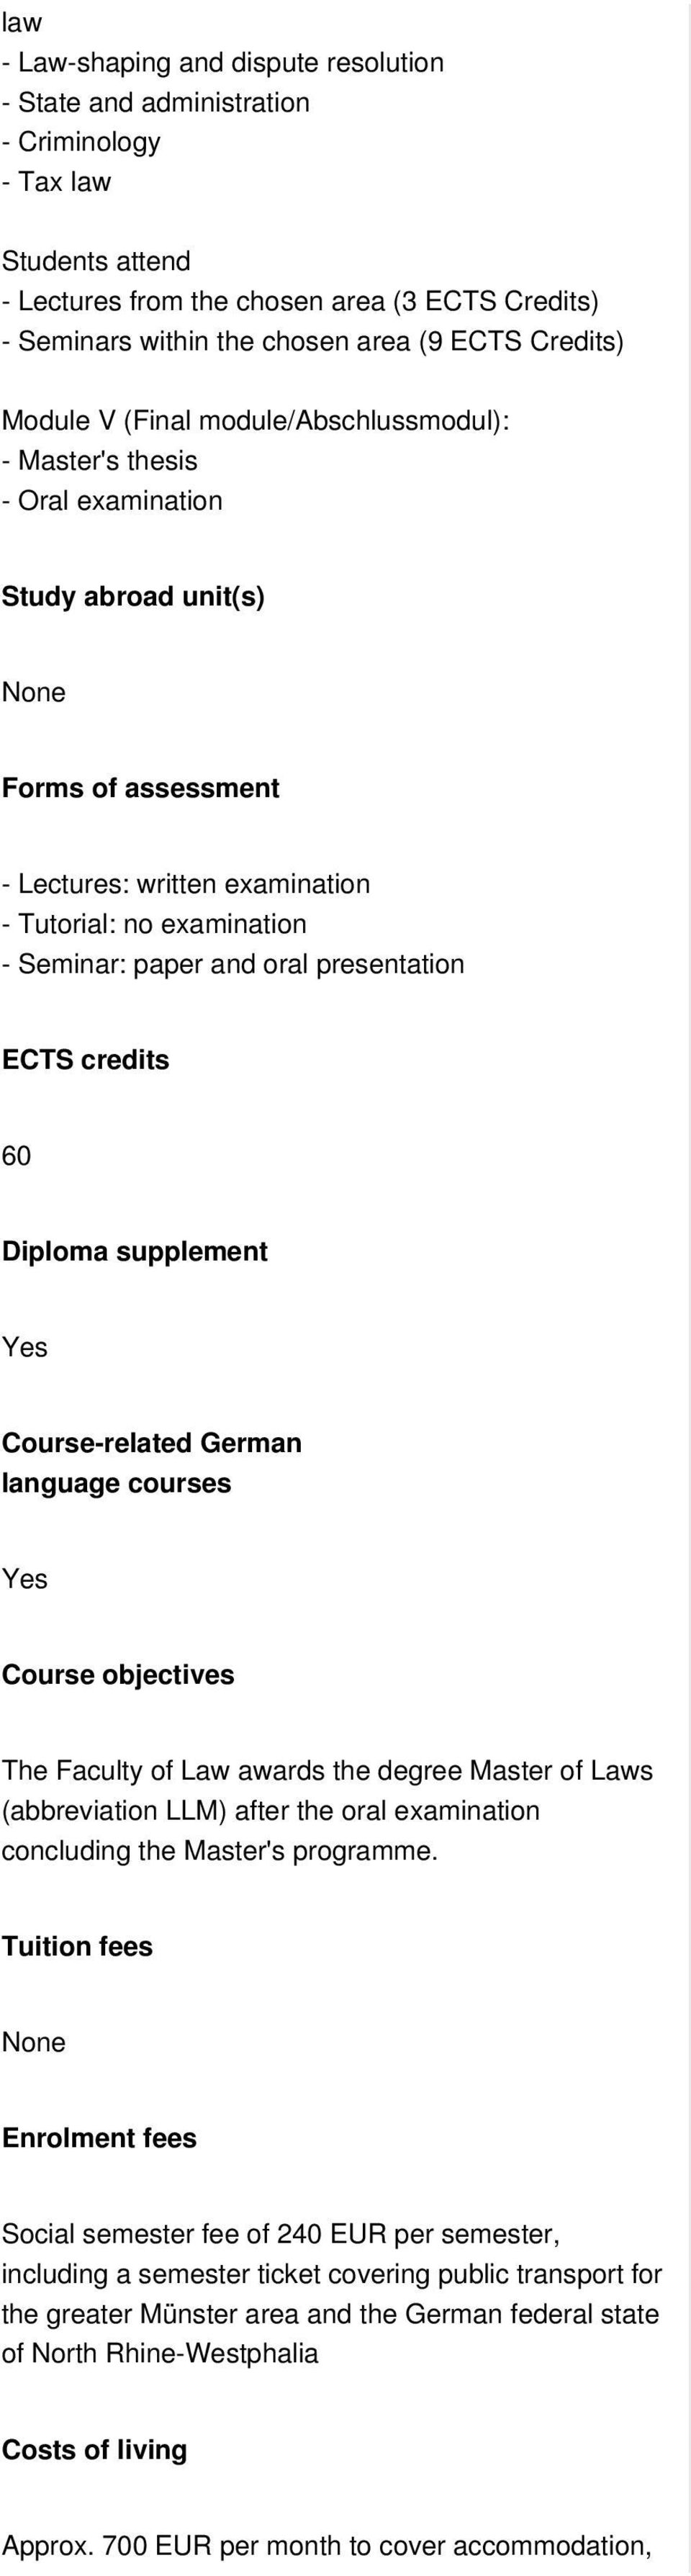 Seminar: paper and oral presentation ECTS credits 60 Diploma supplement Course-related German language courses Course objectives The Faculty of Law awards the degree Master of Laws (abbreviation LLM)